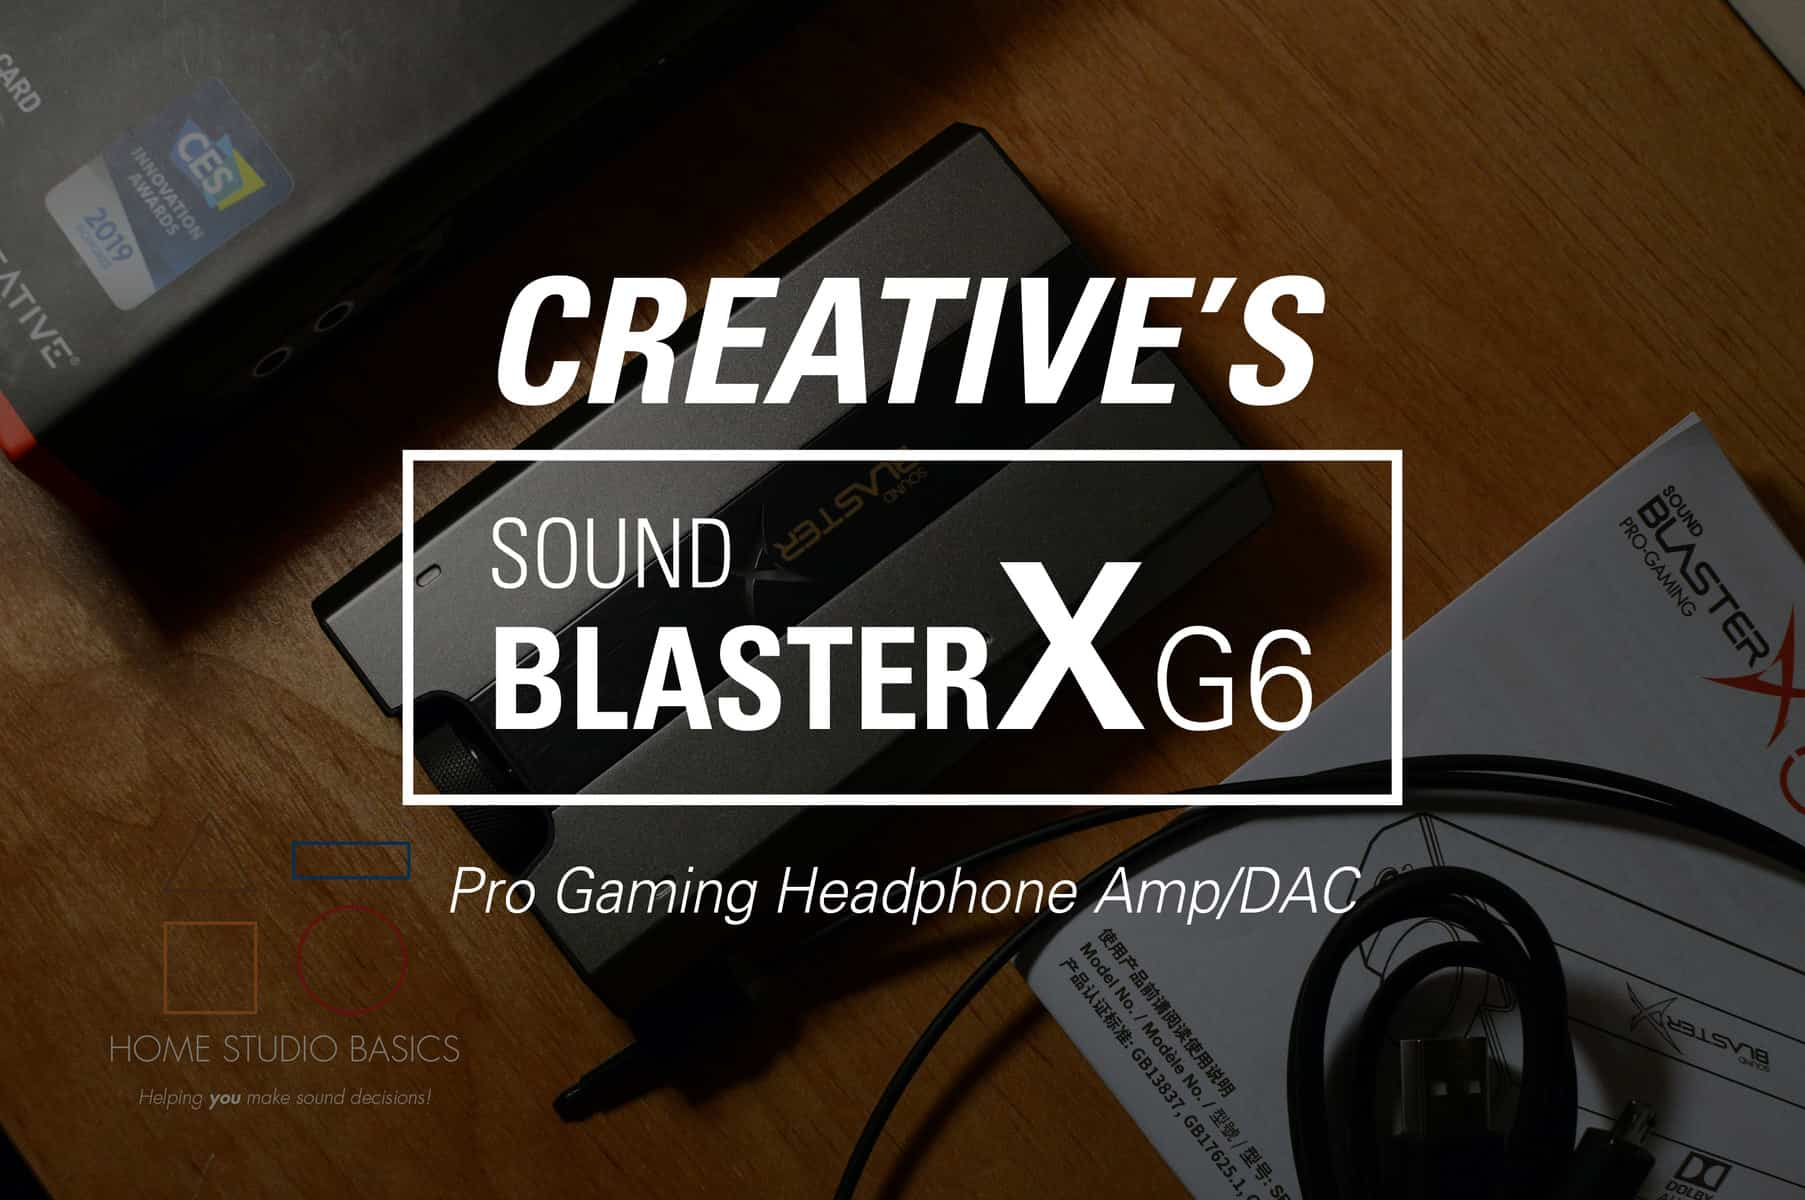 Creative SoundBlasterX G6 Amp/DAC Review